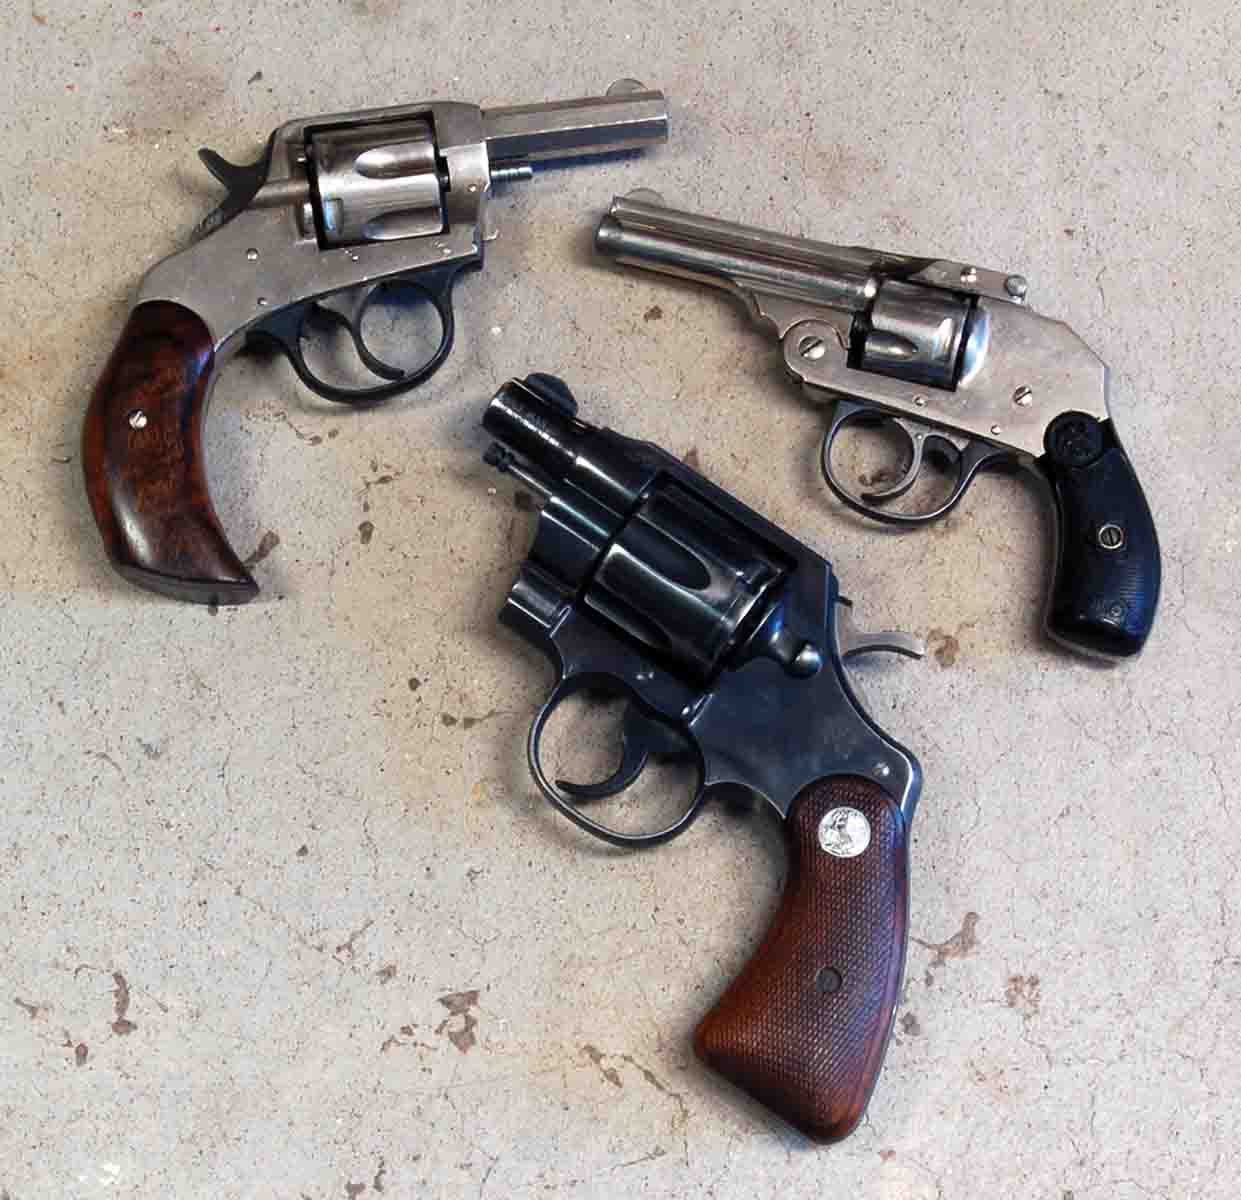 Small .32s include a (1) H&R and a (2) Iver Johnson. A (3) Colt Marshall .38 Special is shown for comparison.